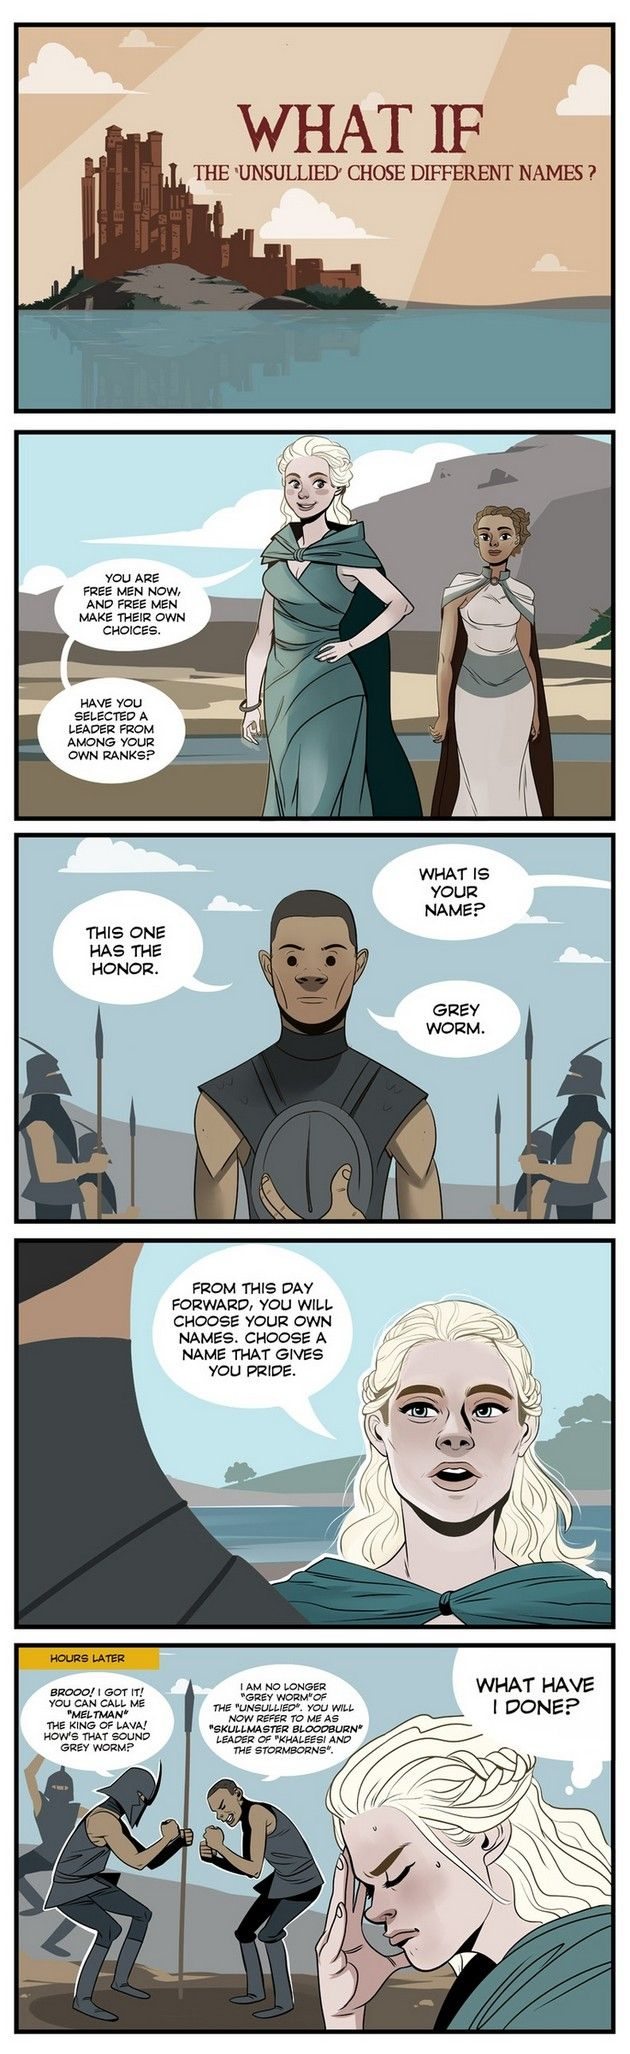 game of thrones r names